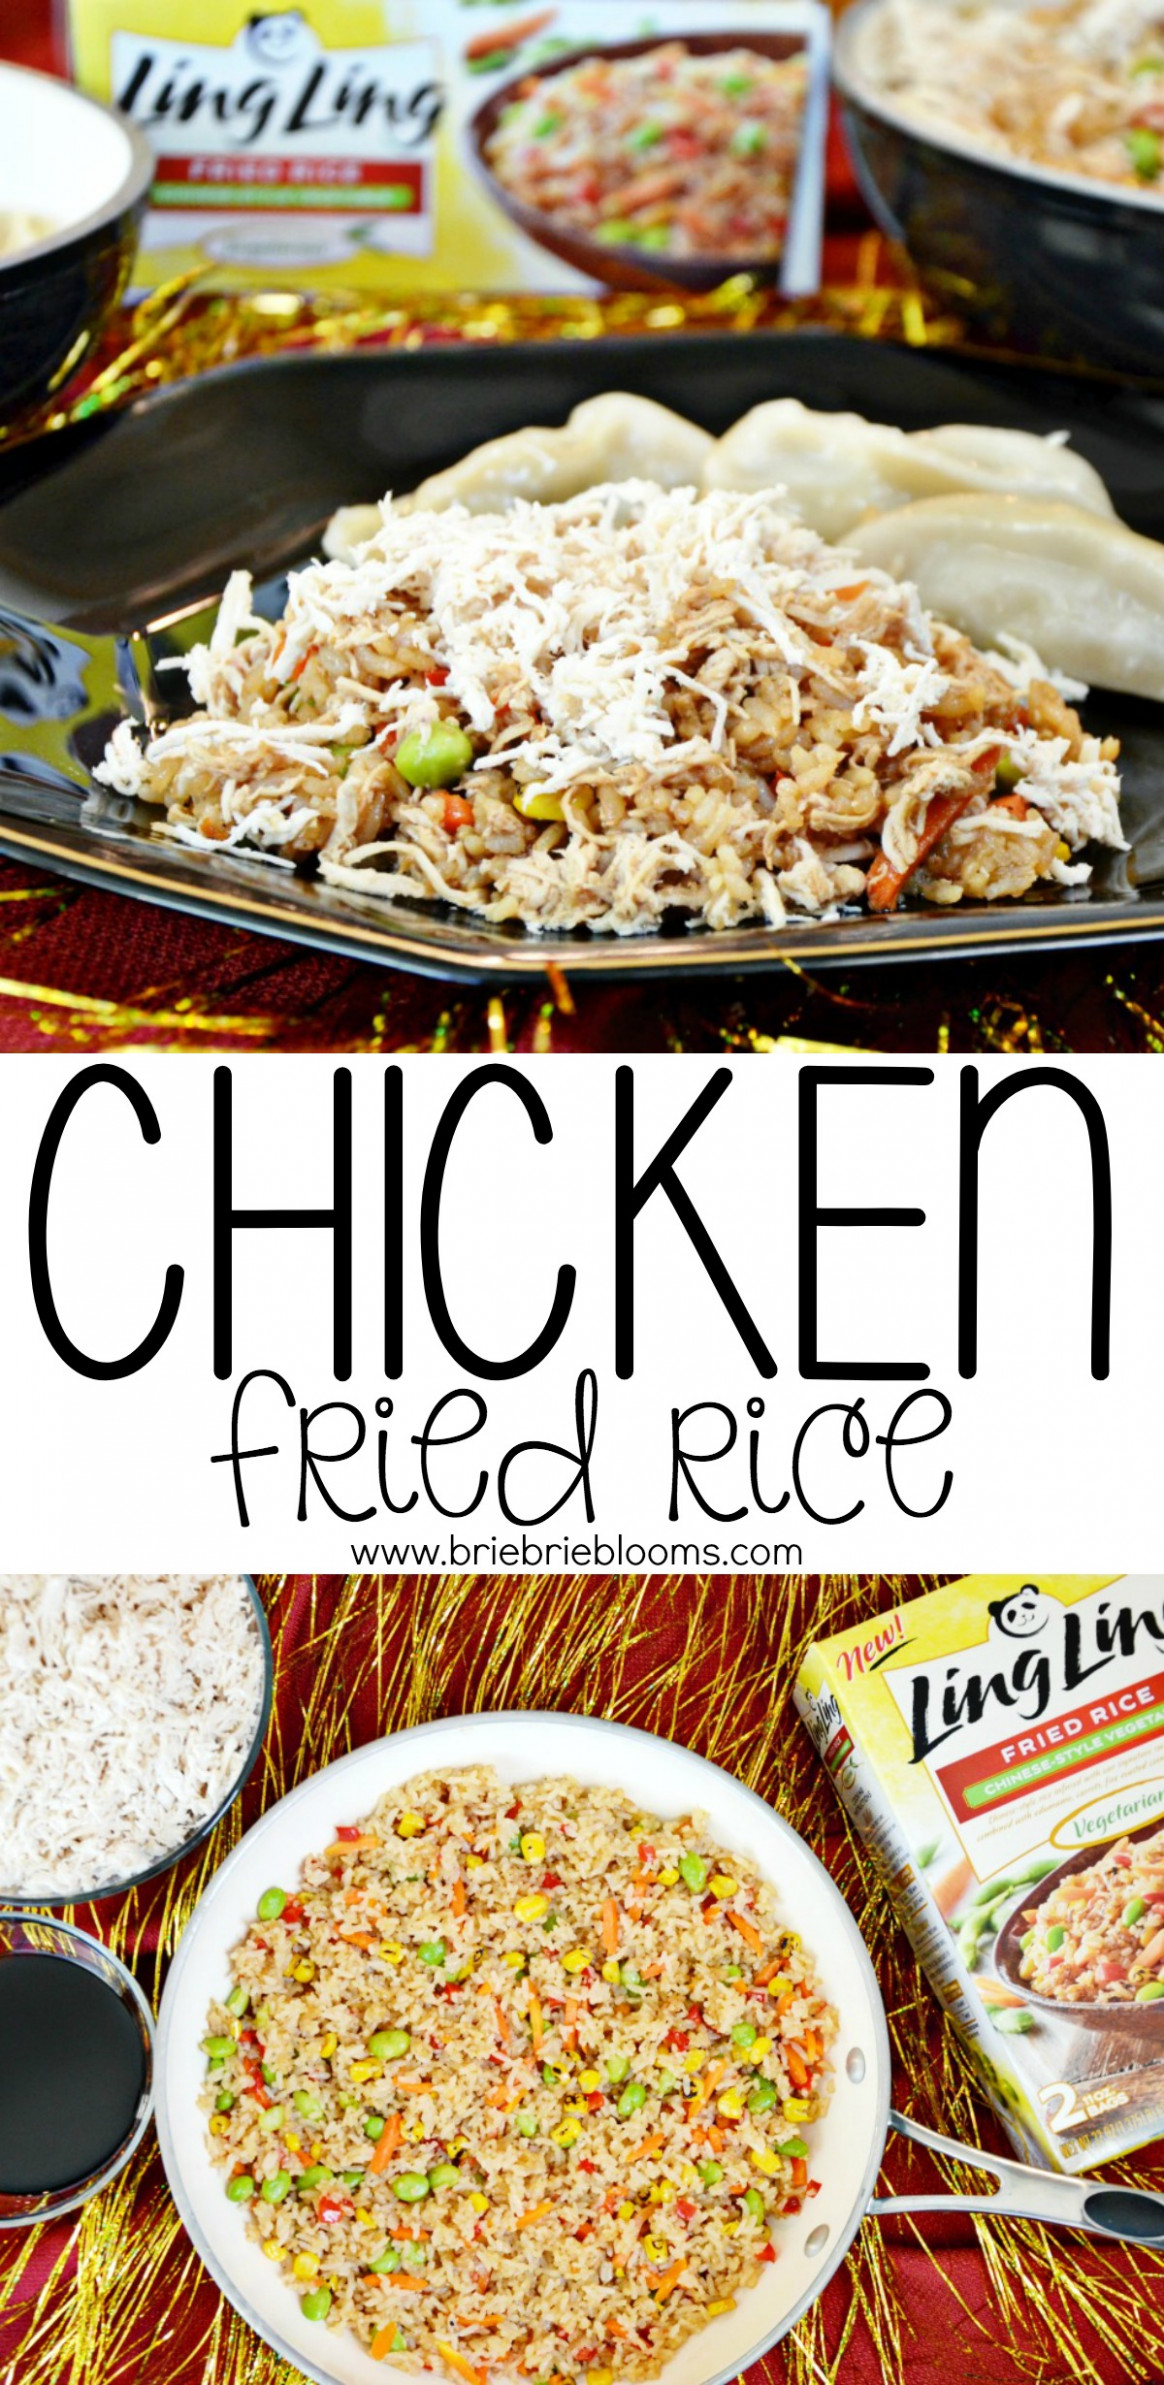 Chicken Fried Rice Recipe | Chinese New Year - Brie Brie Blooms - chicken recipes varieties